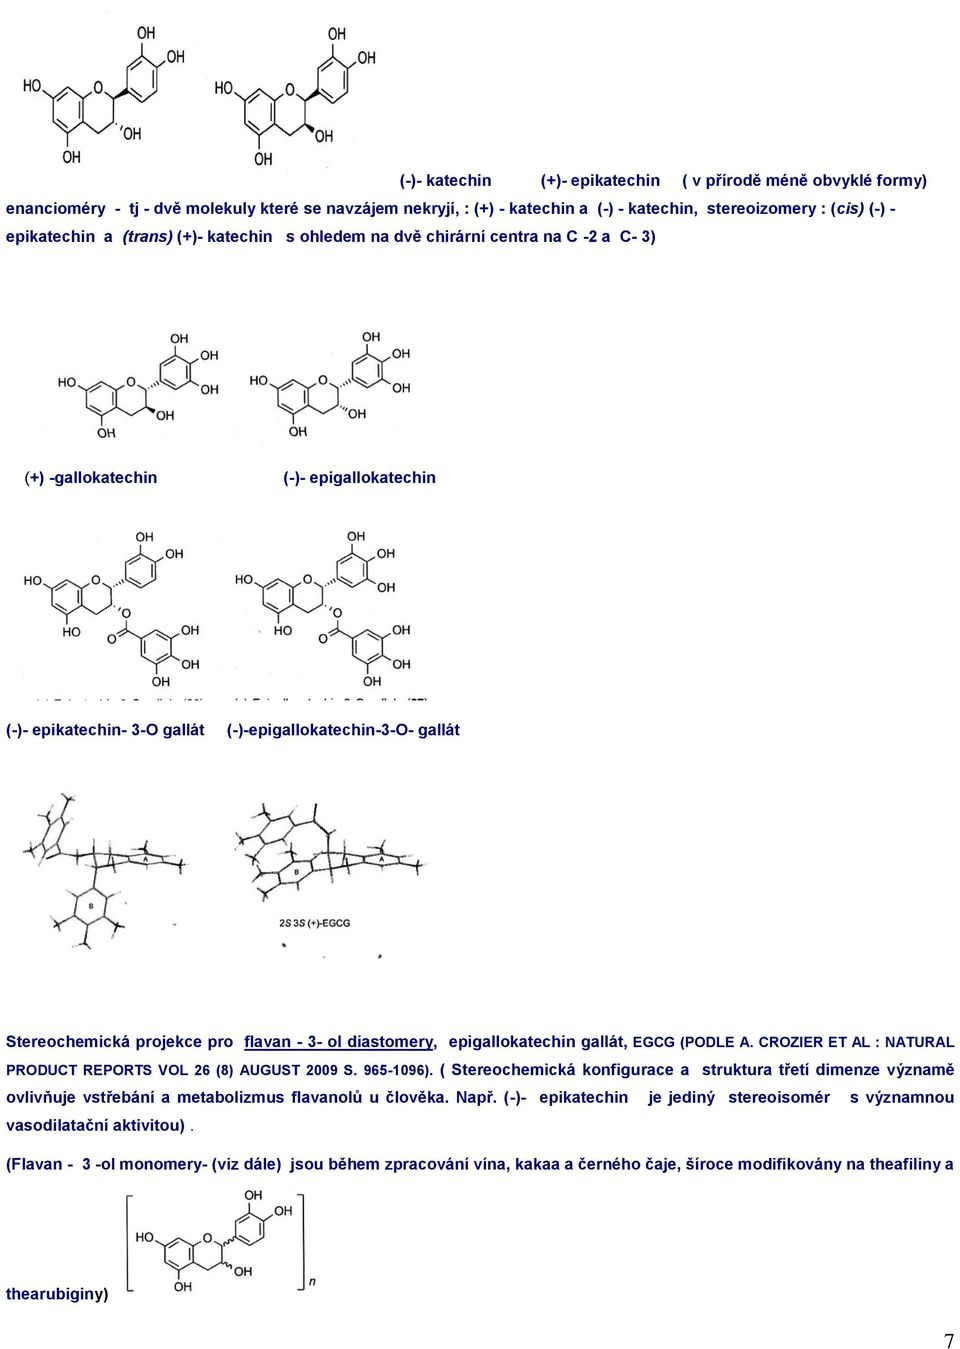 pro flavan - 3- ol diastomery, epigallokatechin gallát, EGCG (PODLE A. CROZIER ET AL : NATURAL PRODUCT REPORTS VOL 26 (8) AUGUST 2009 S. 965-1096).